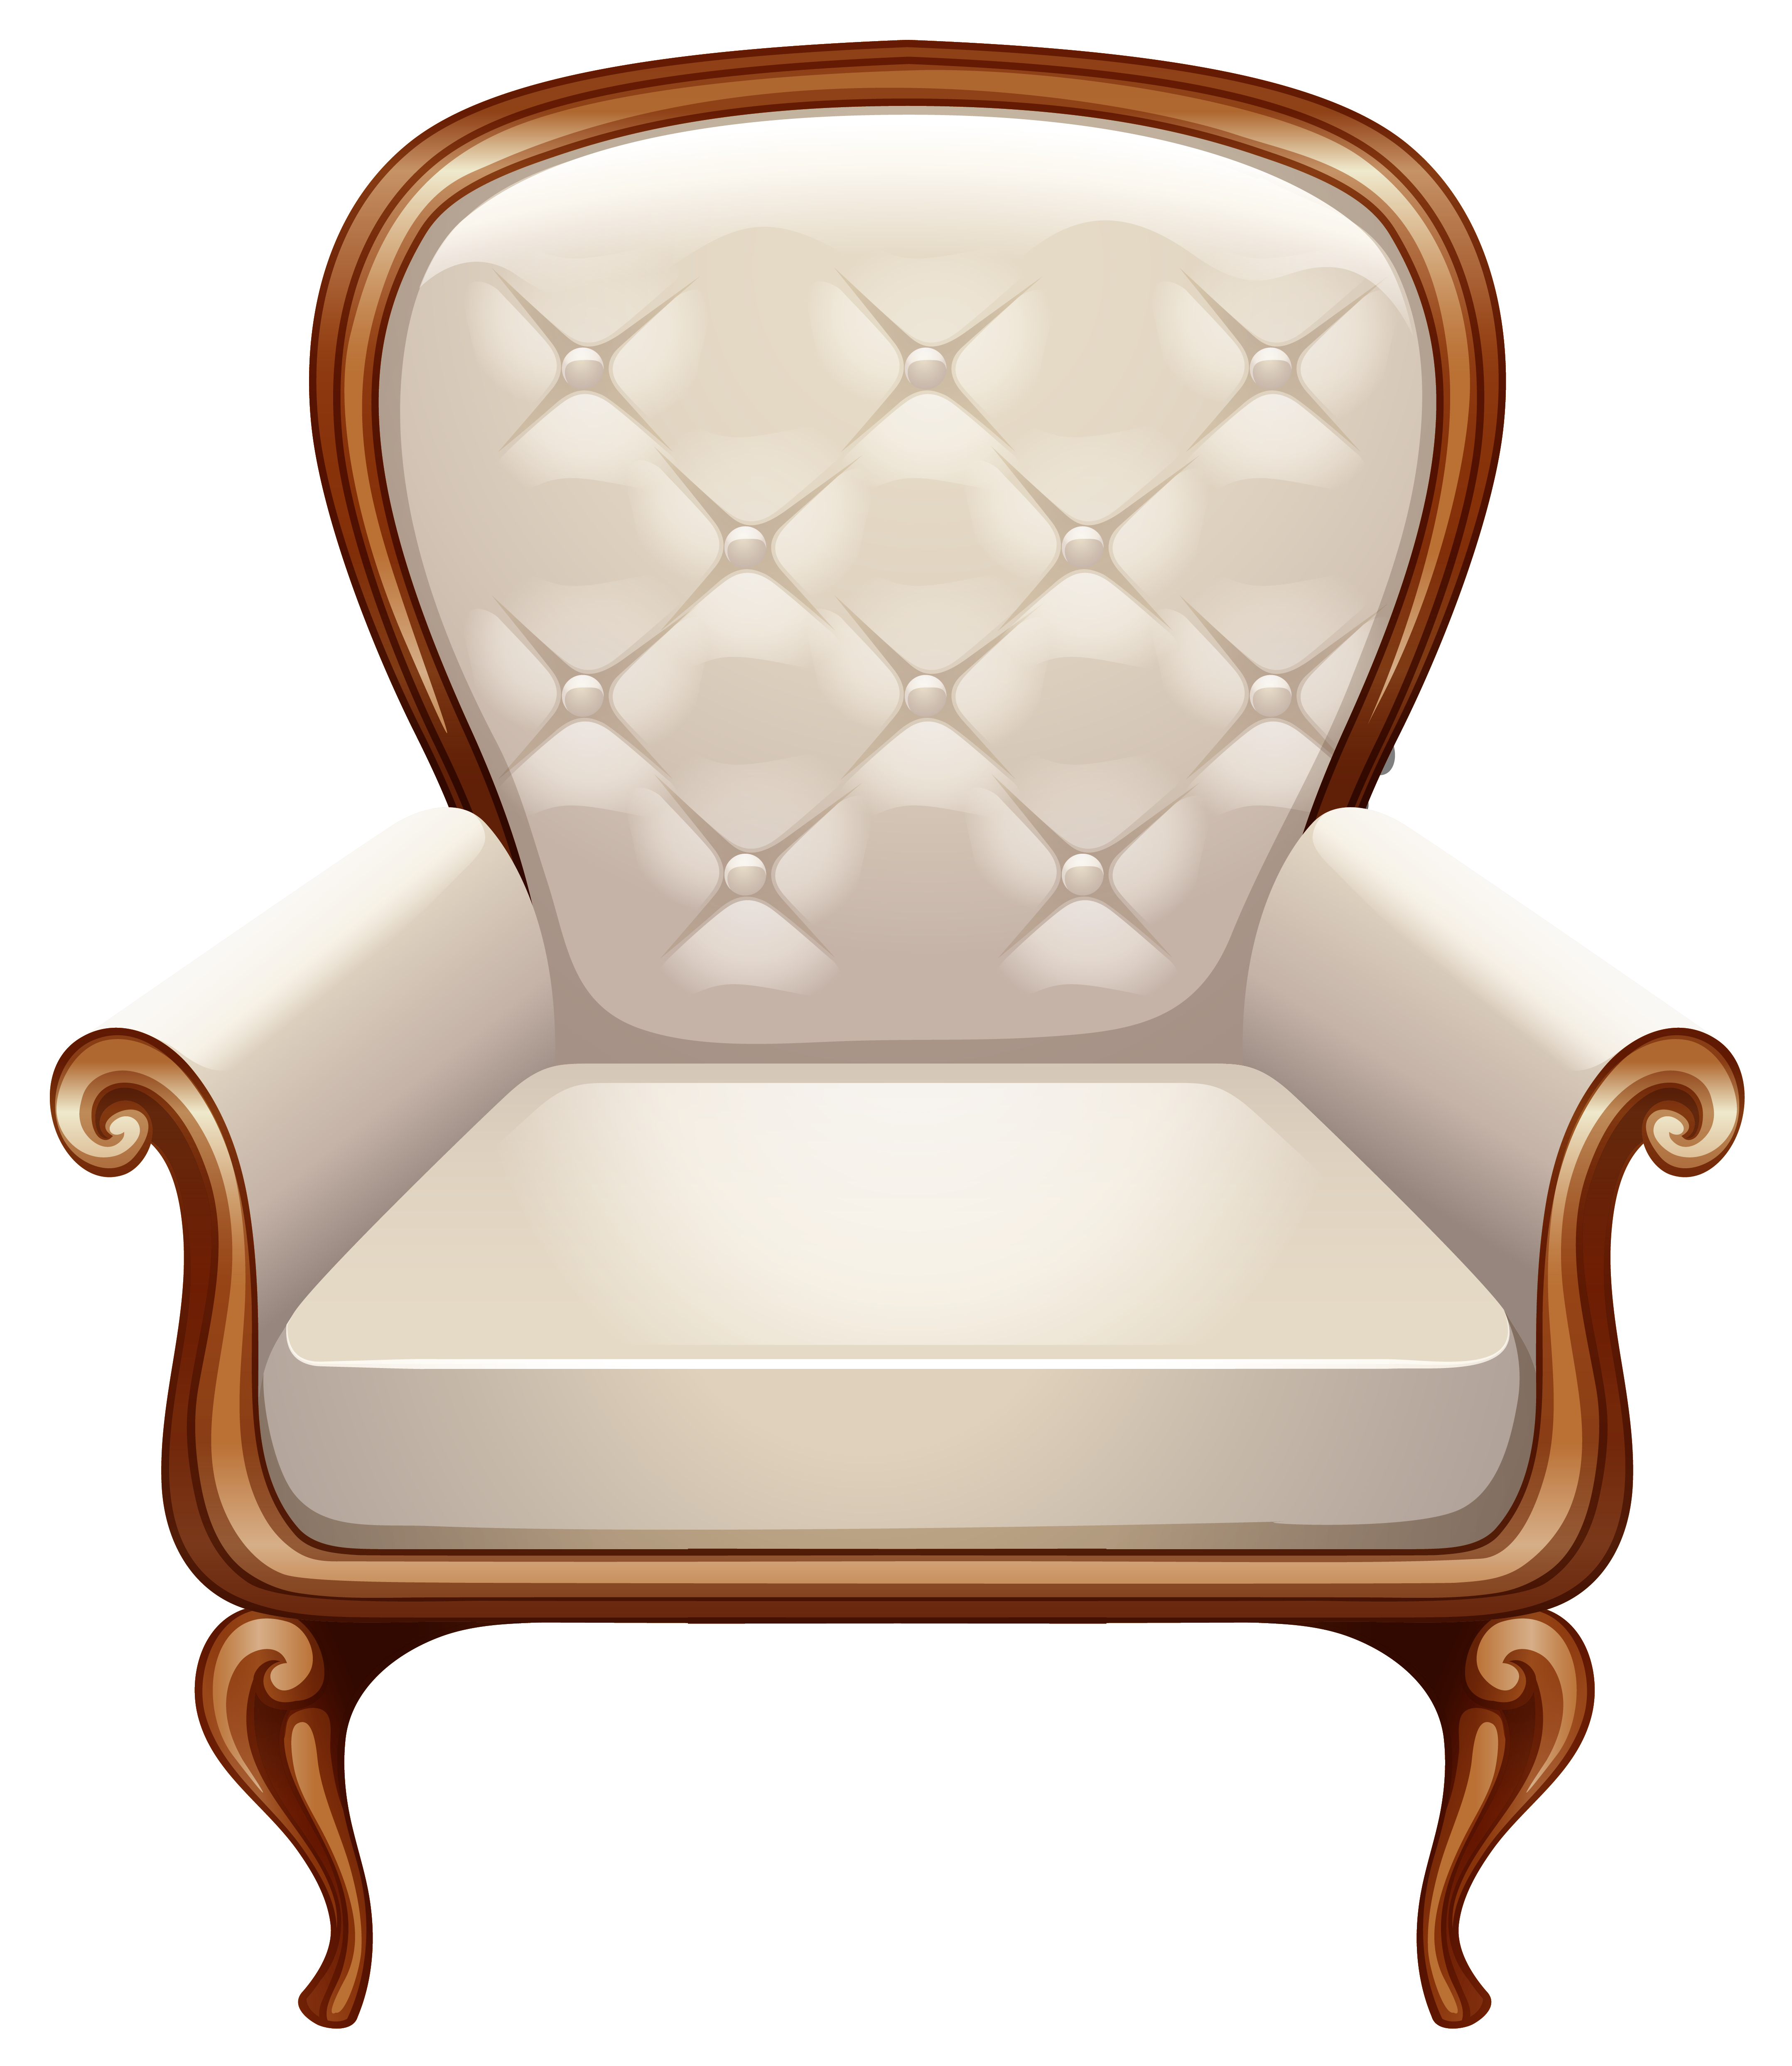 clip art library library Arm png image gallery. Chair clipart